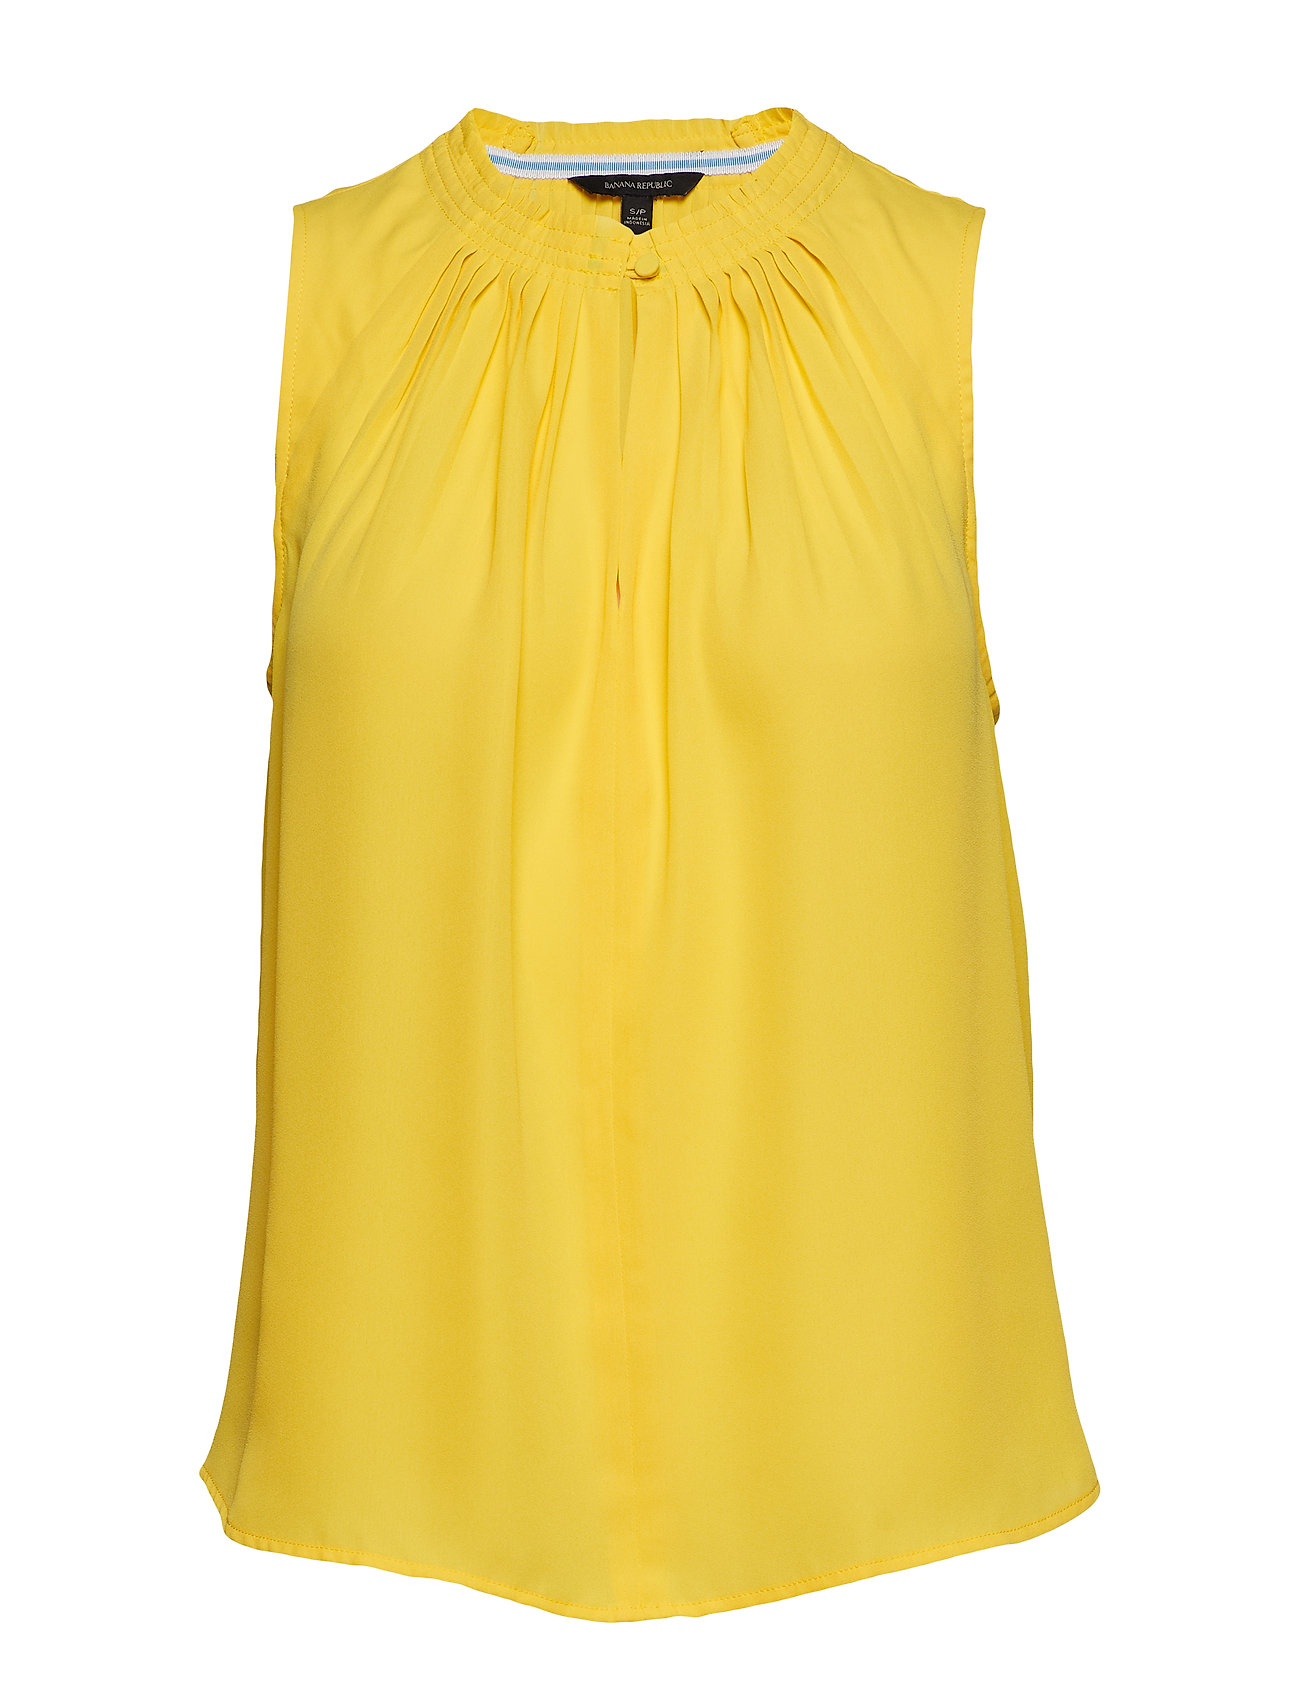 Image of Pleated Sleeveless Top Bluse Ærmeløs Gul Banana Republic (3189527951)